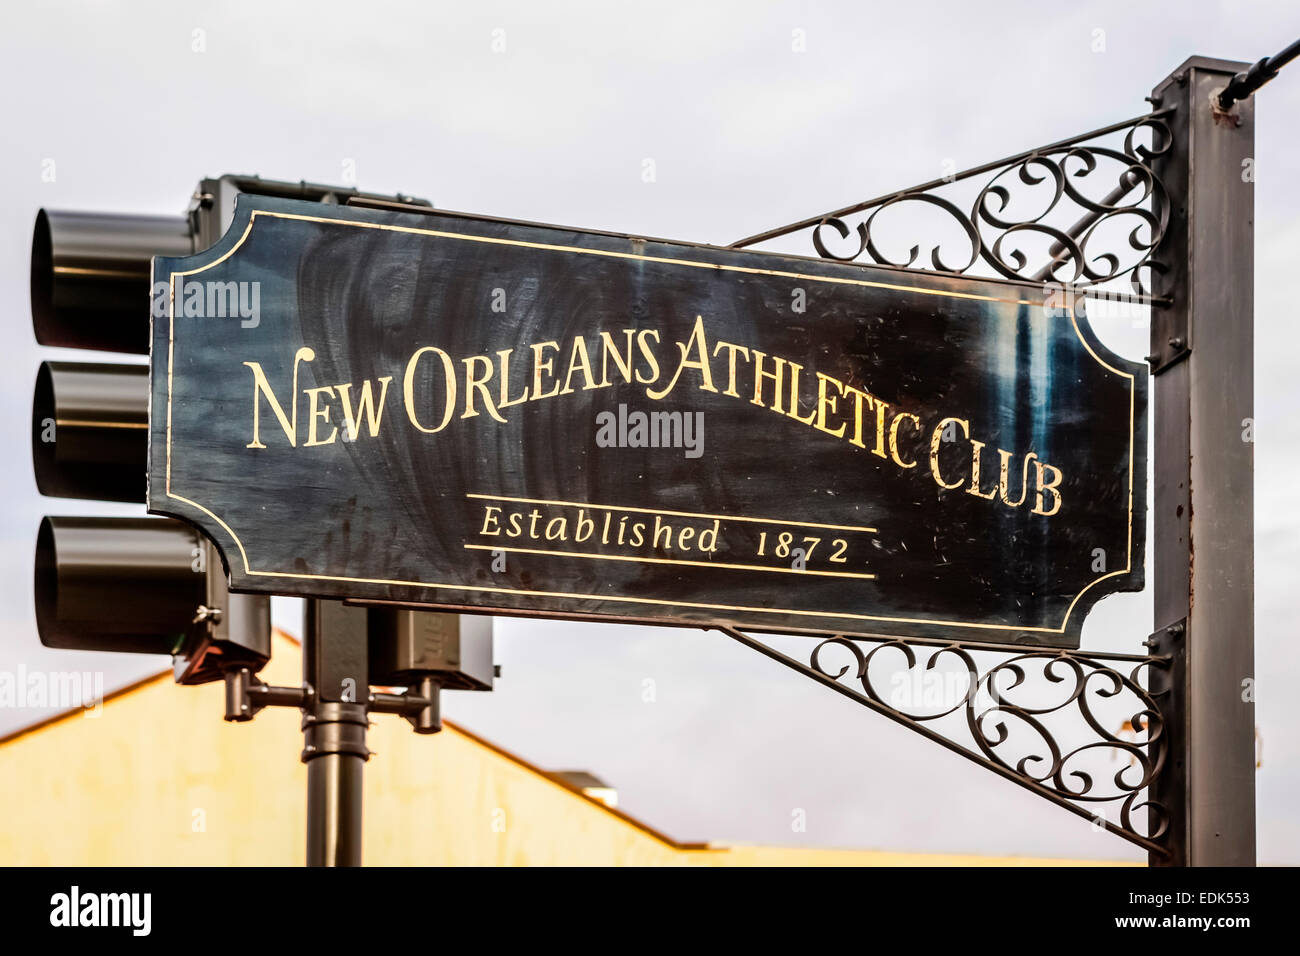 Segno di overhead al di fuori del New Orleans Athletic Club Foto Stock